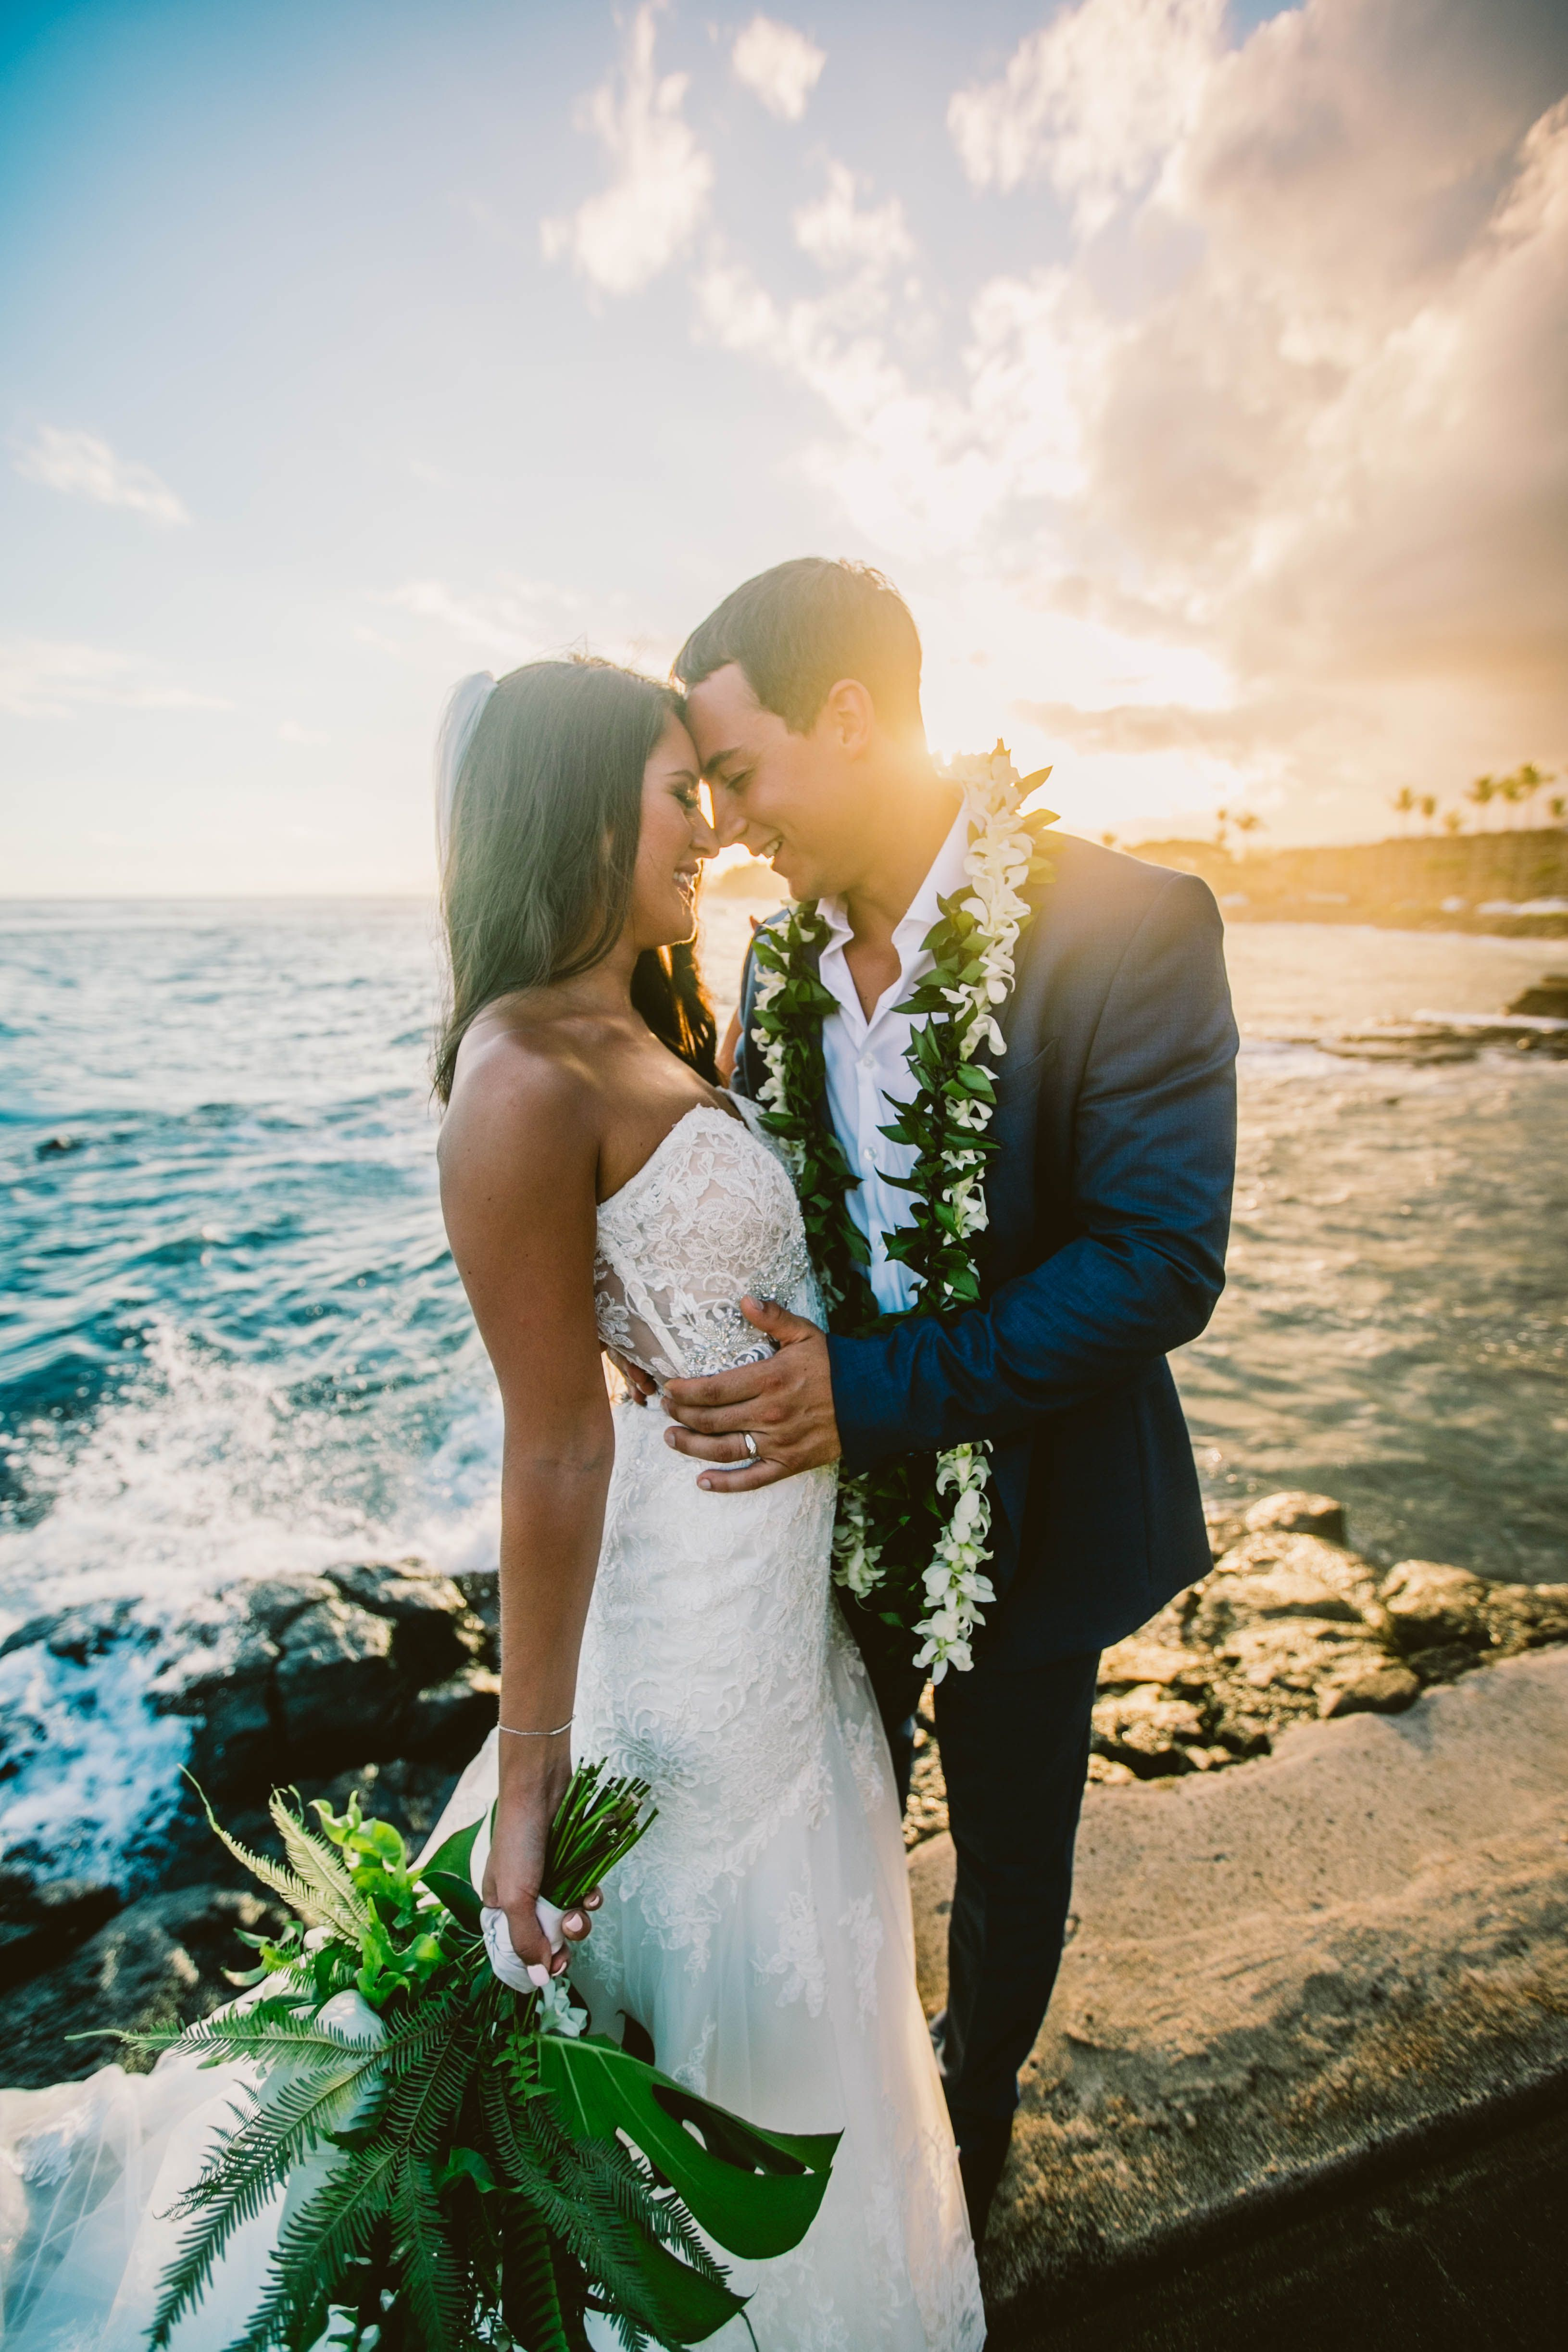 Destination hawaii wedding in 2020 with images beach